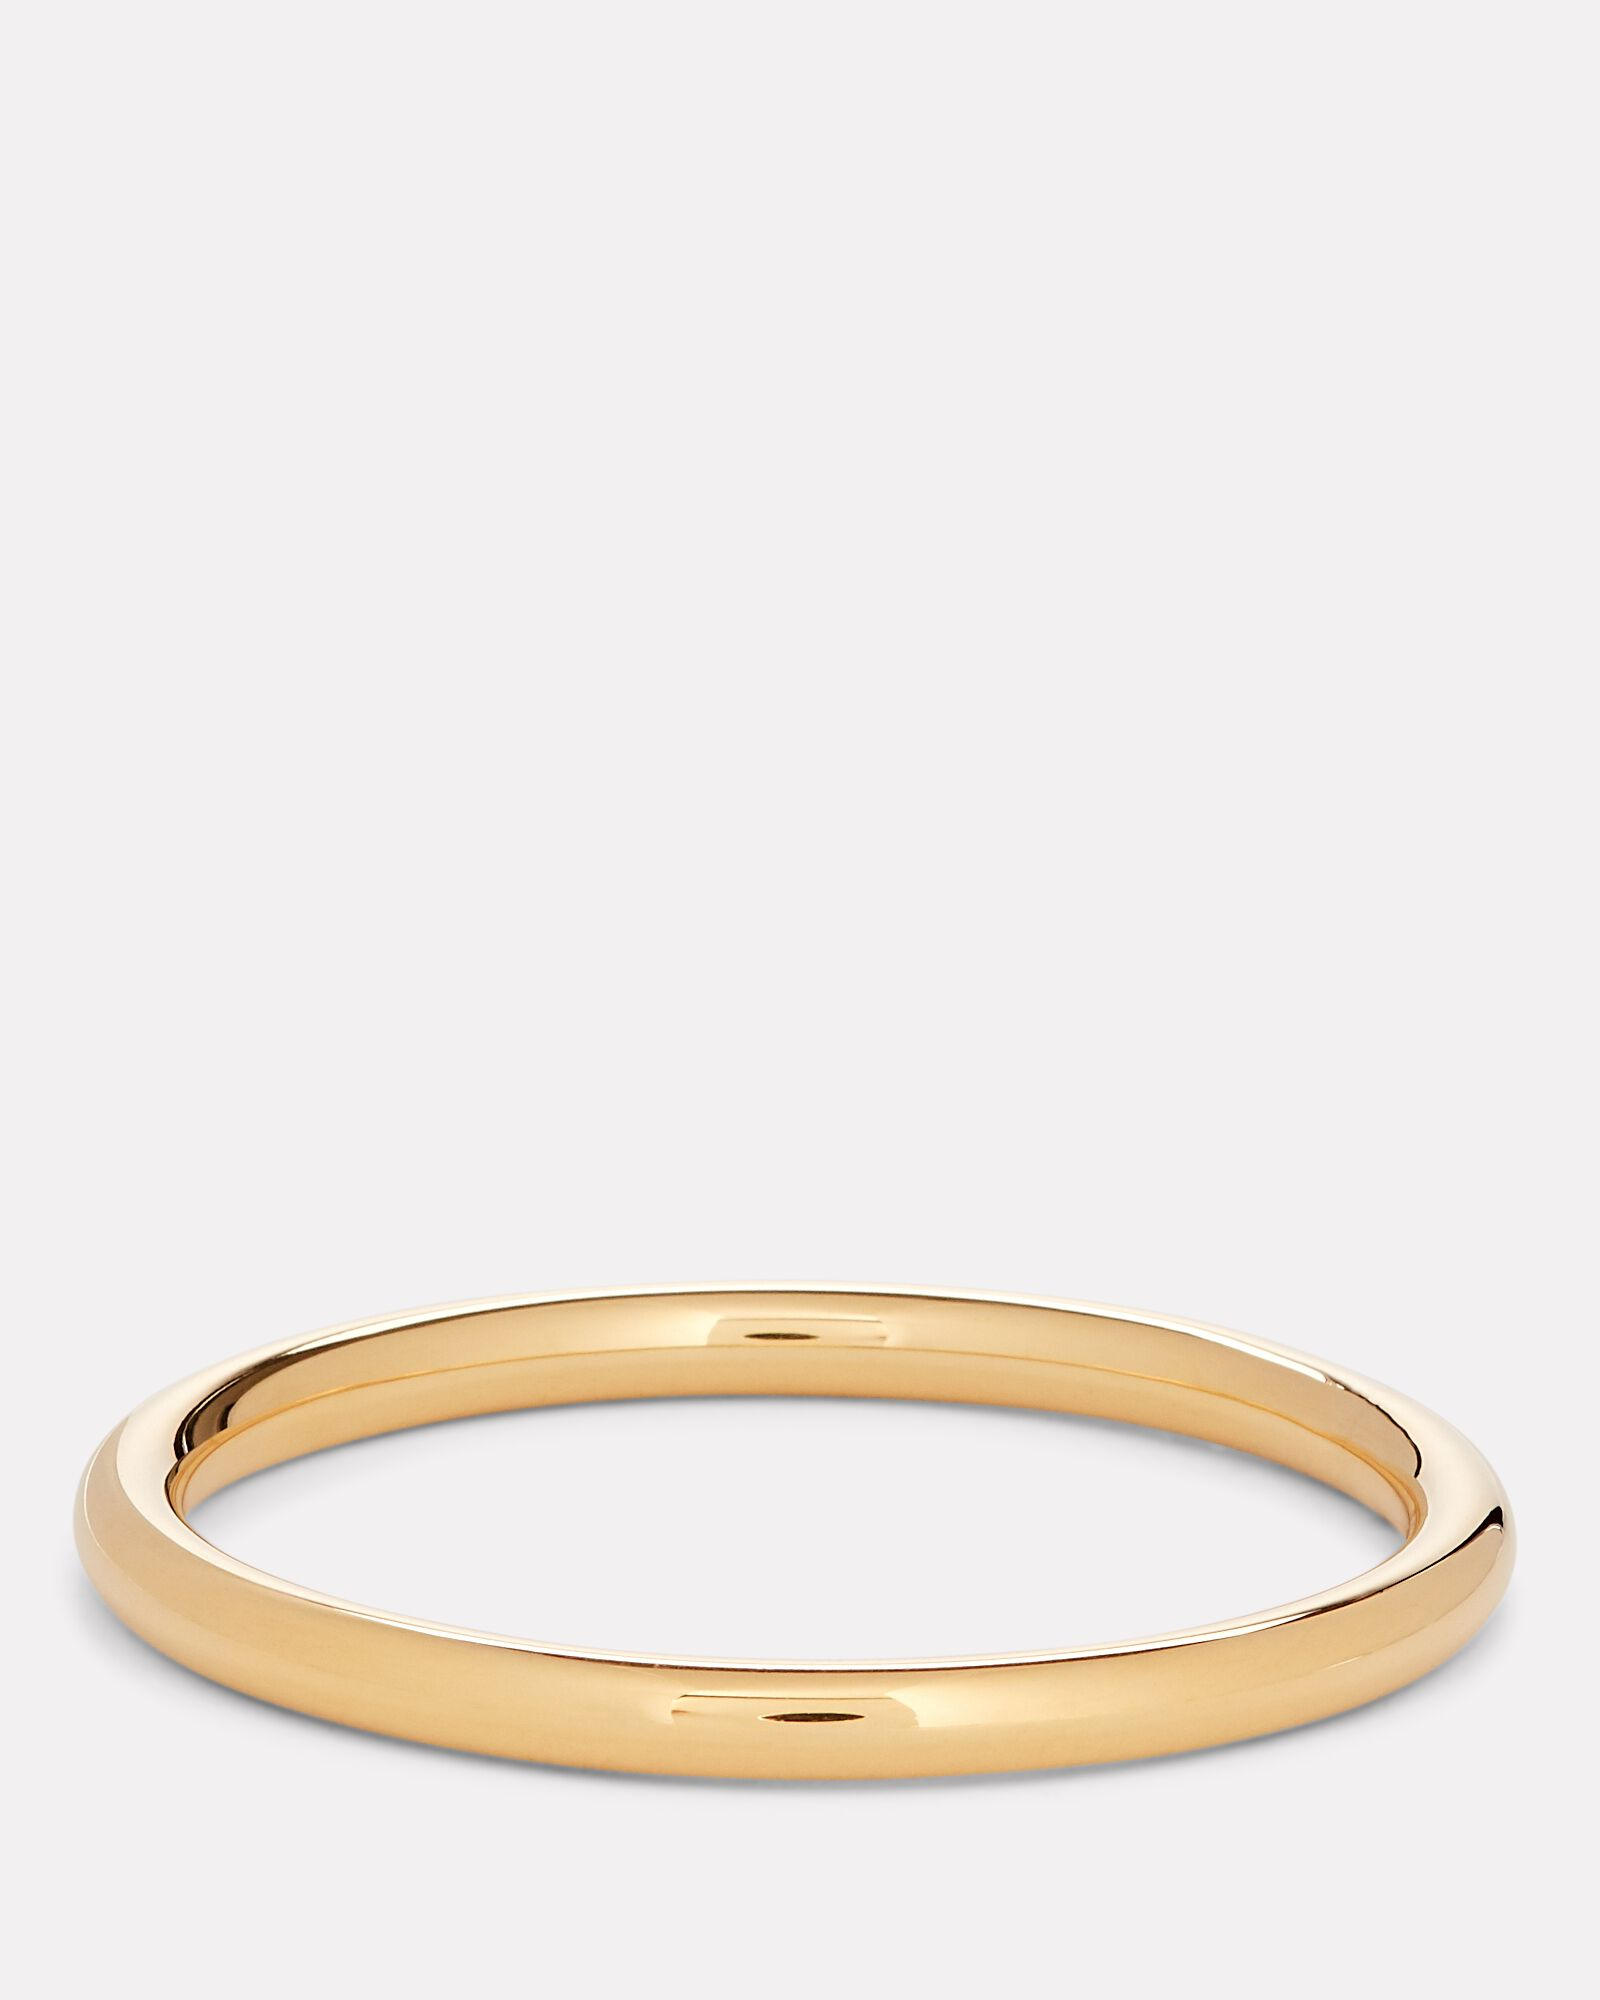 Goldie Tube Bangle Bracelet, GOLD, hi-res